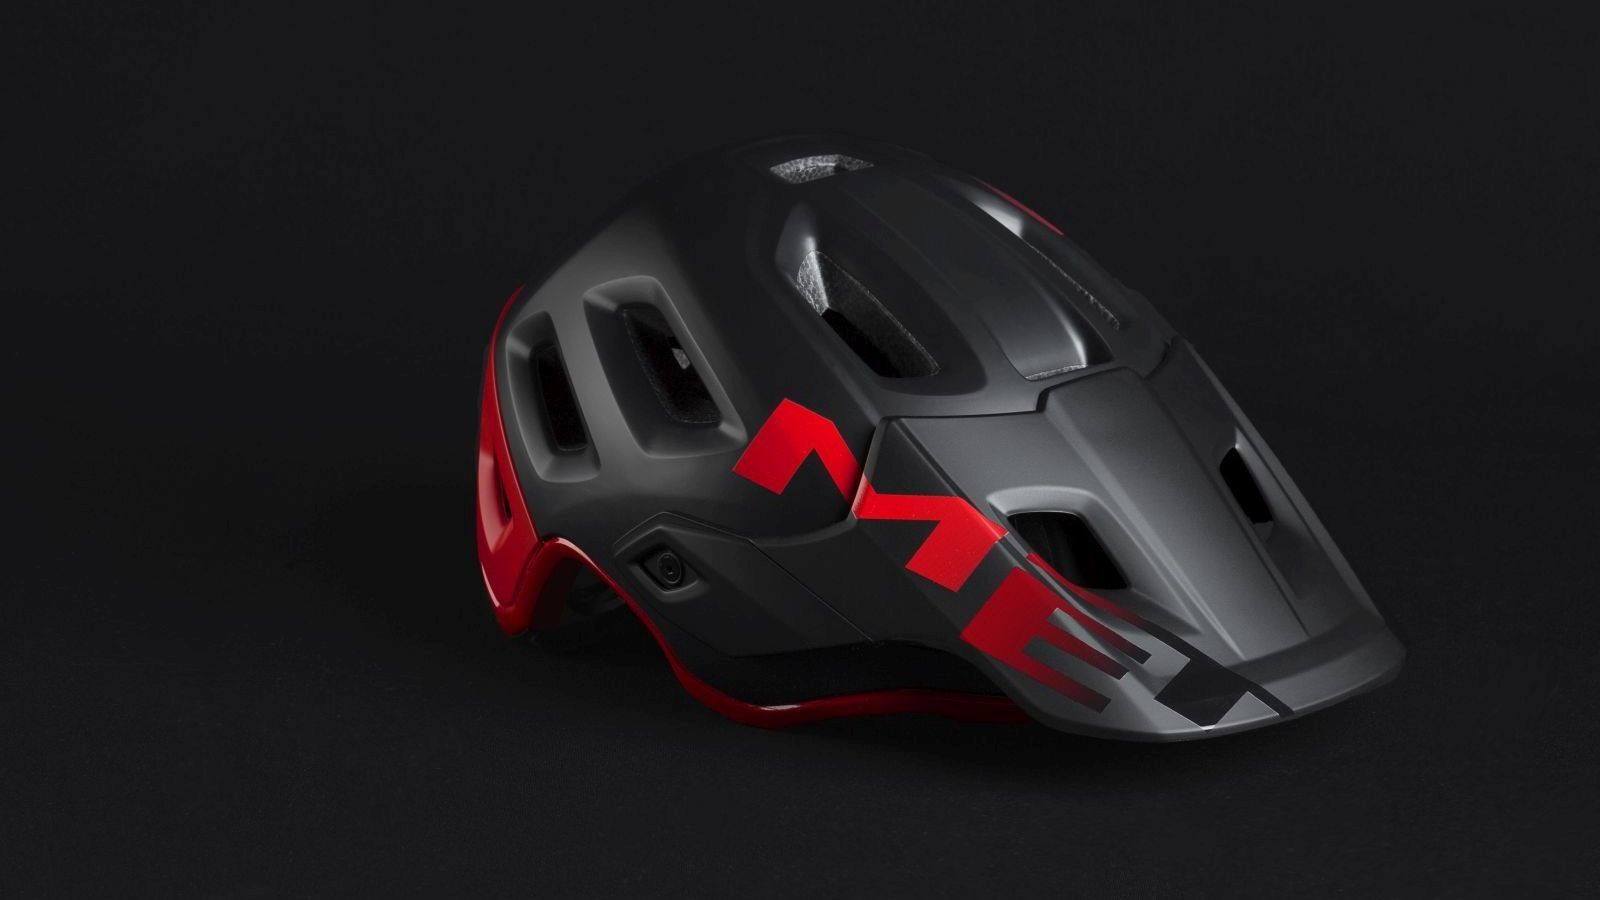 MET Introduces the New Roam Helmet